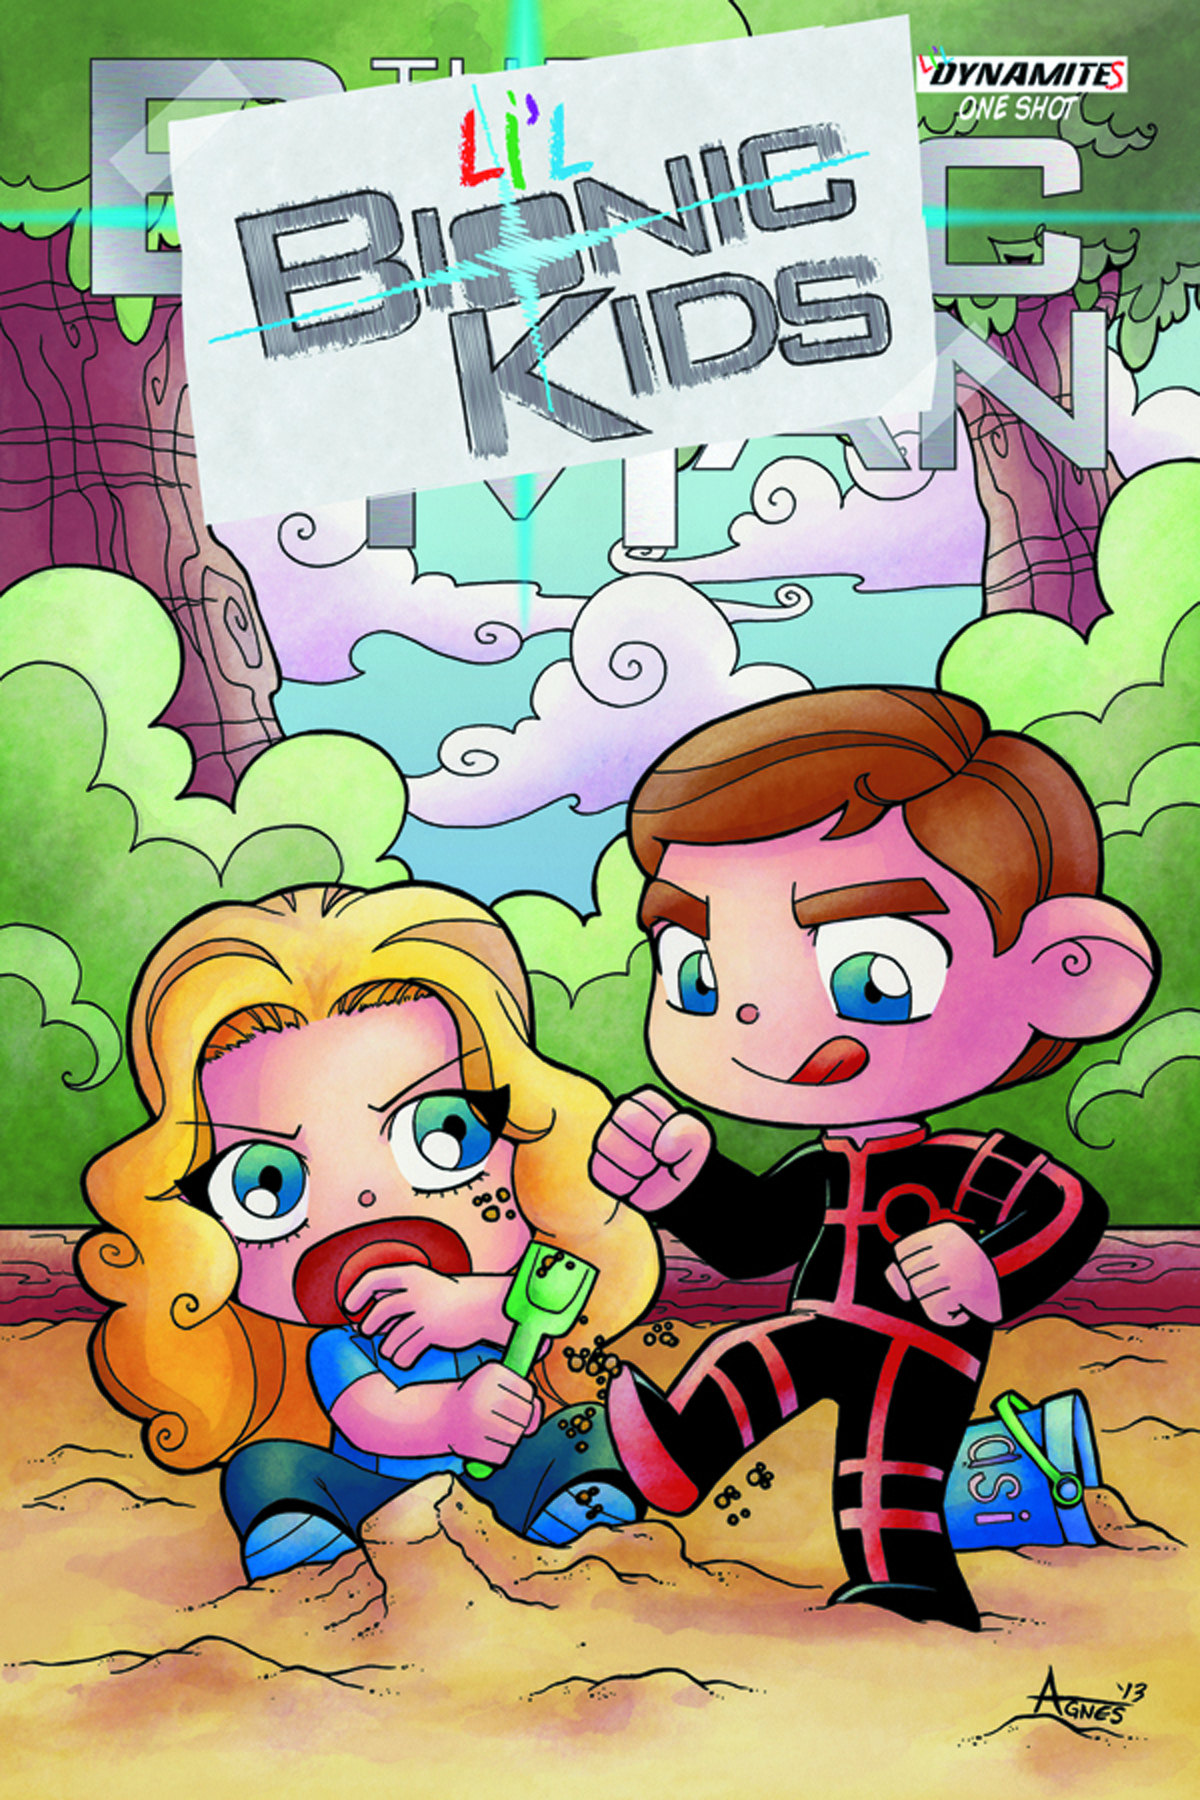 LIL BIONIC KIDS #1 EXC SUBSCRIPTION CVR